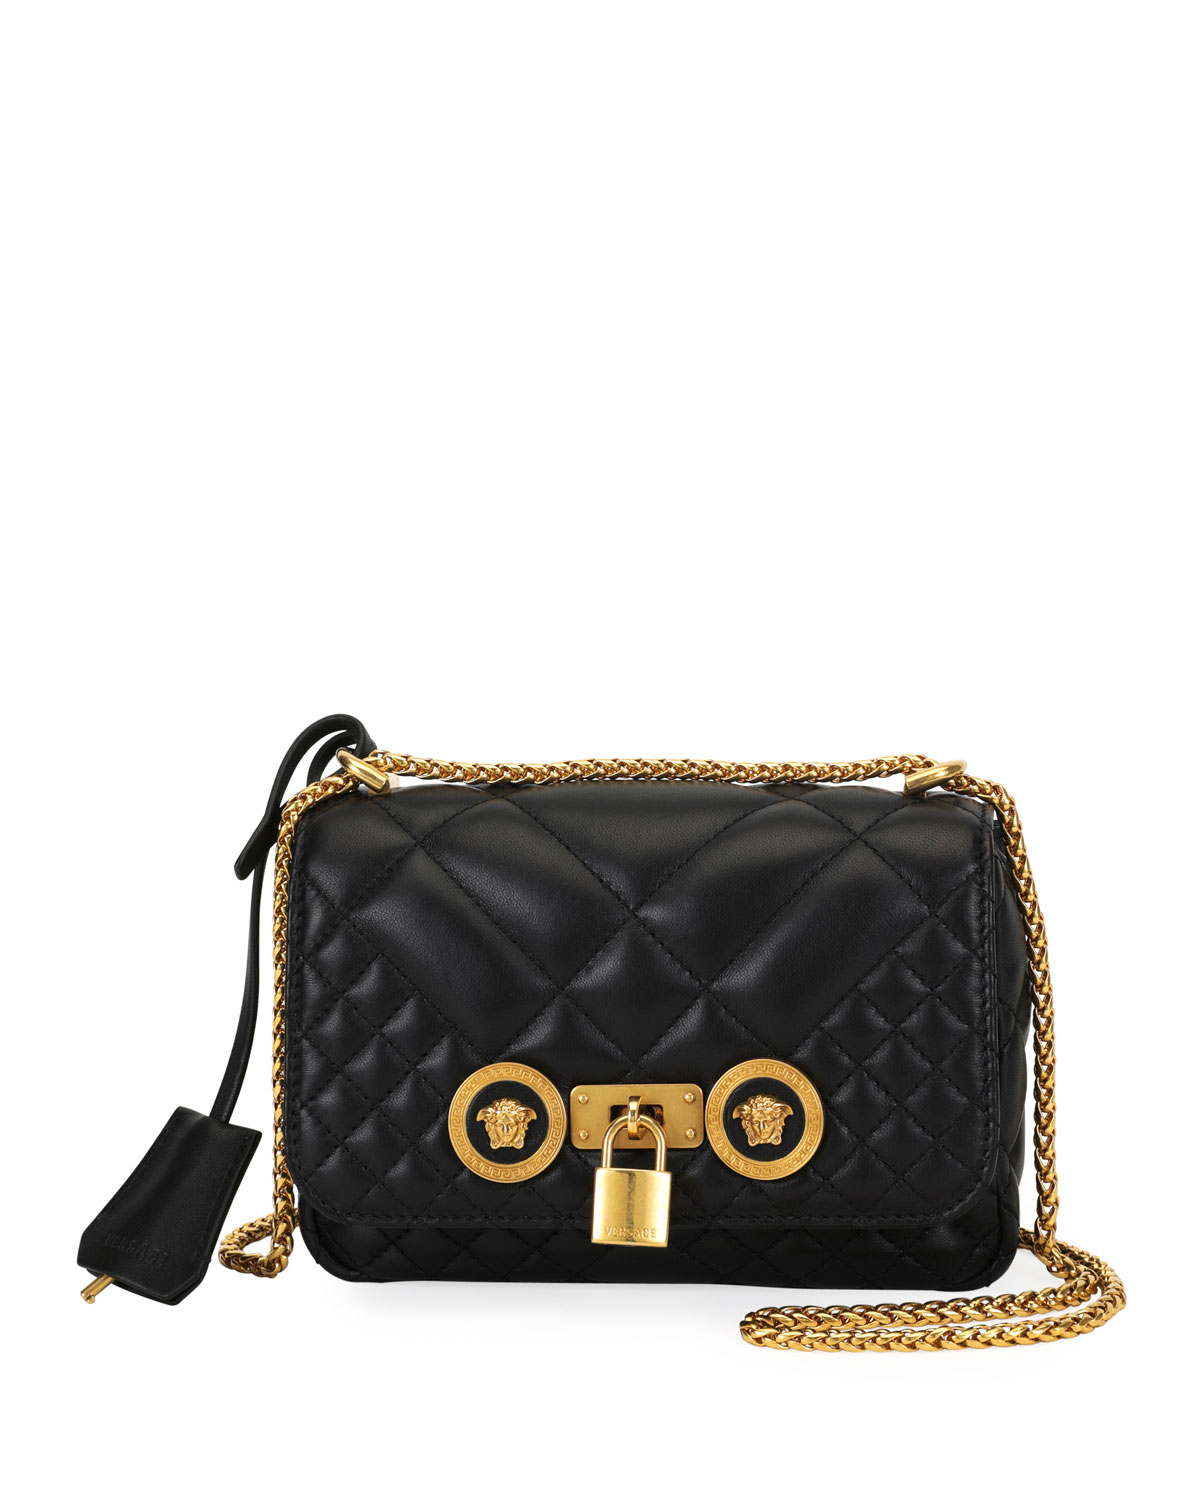 815233e64d Icon Small Quilted Napa Leather Crossbody Bag with Medusa Detail